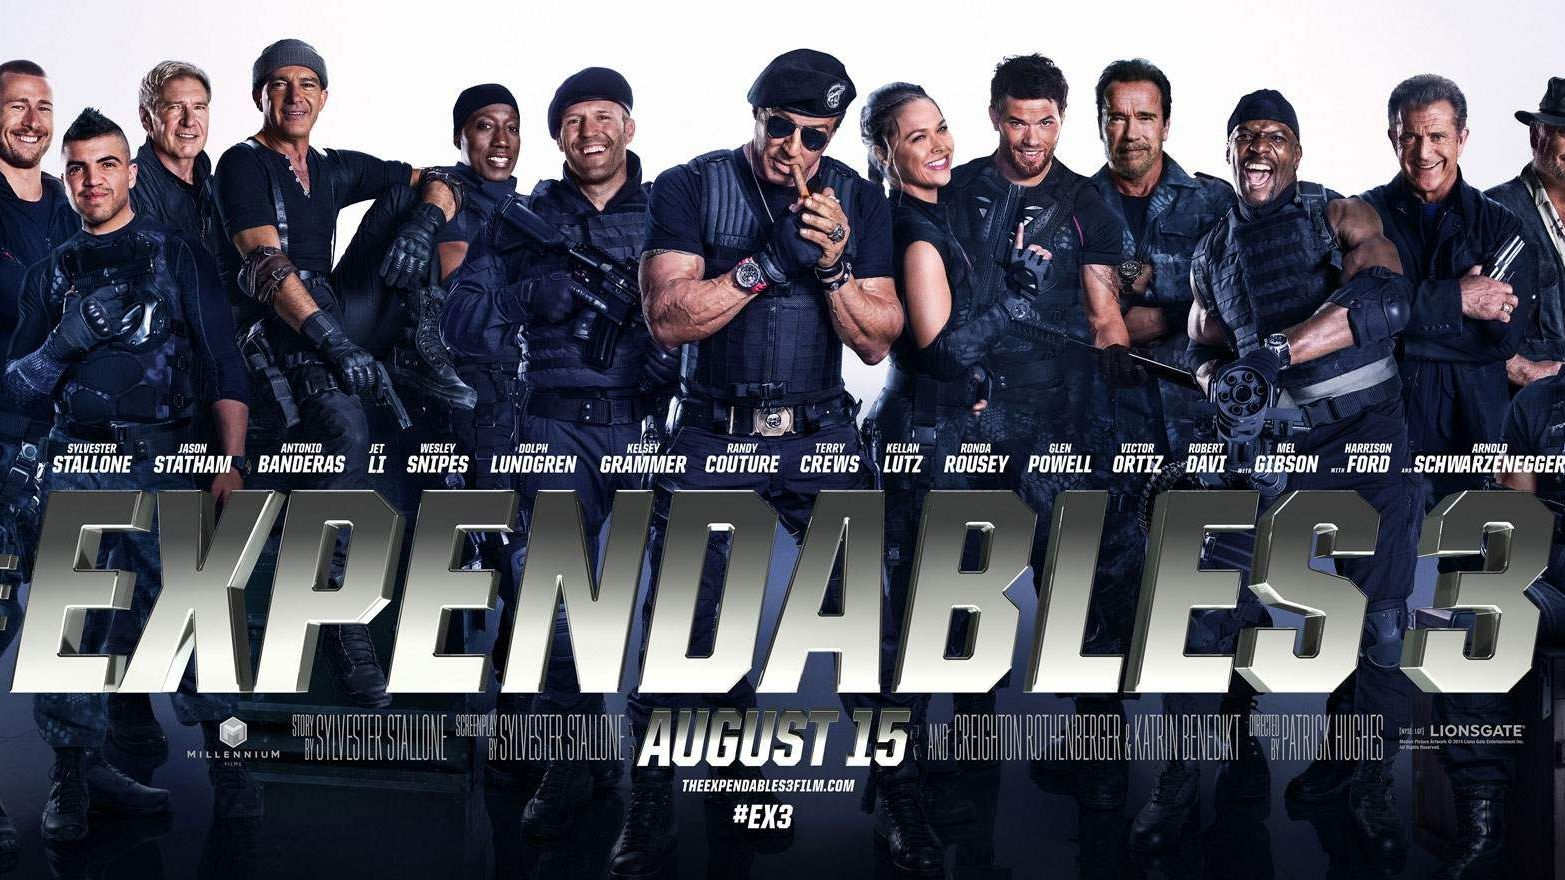 'The Expendables 3' is online gelekt